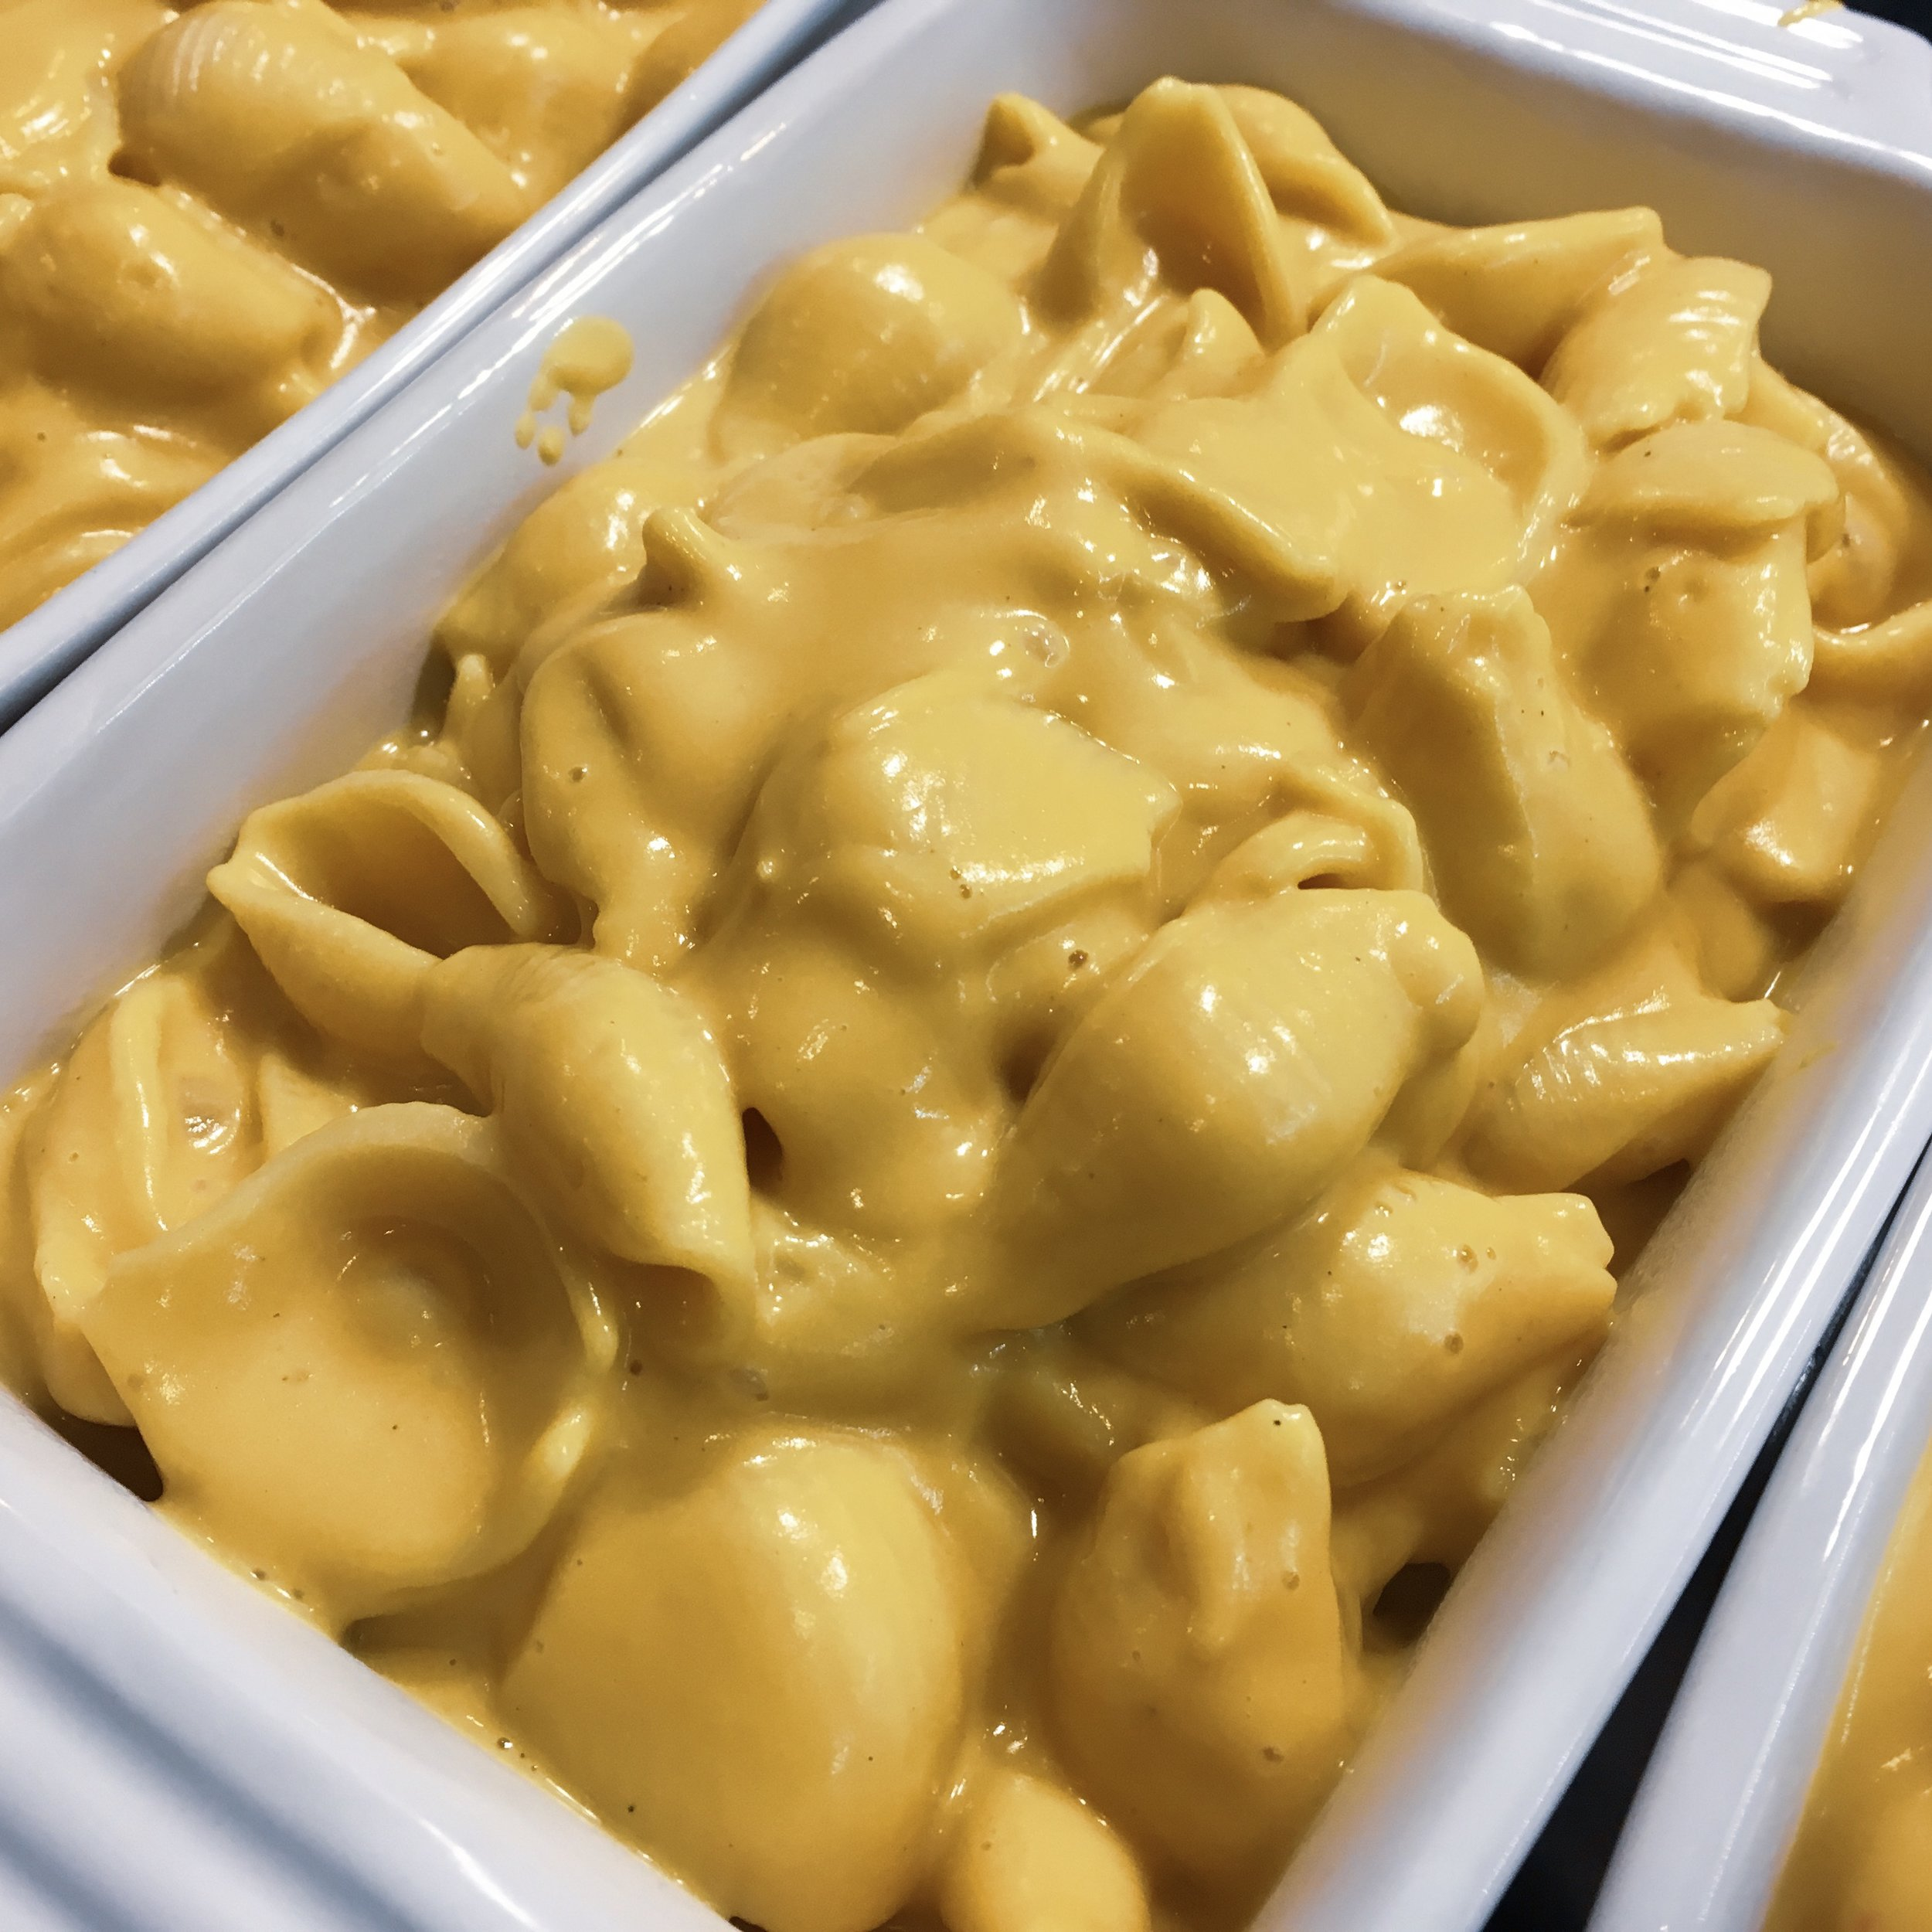 Mac and Cheese in baking dishes